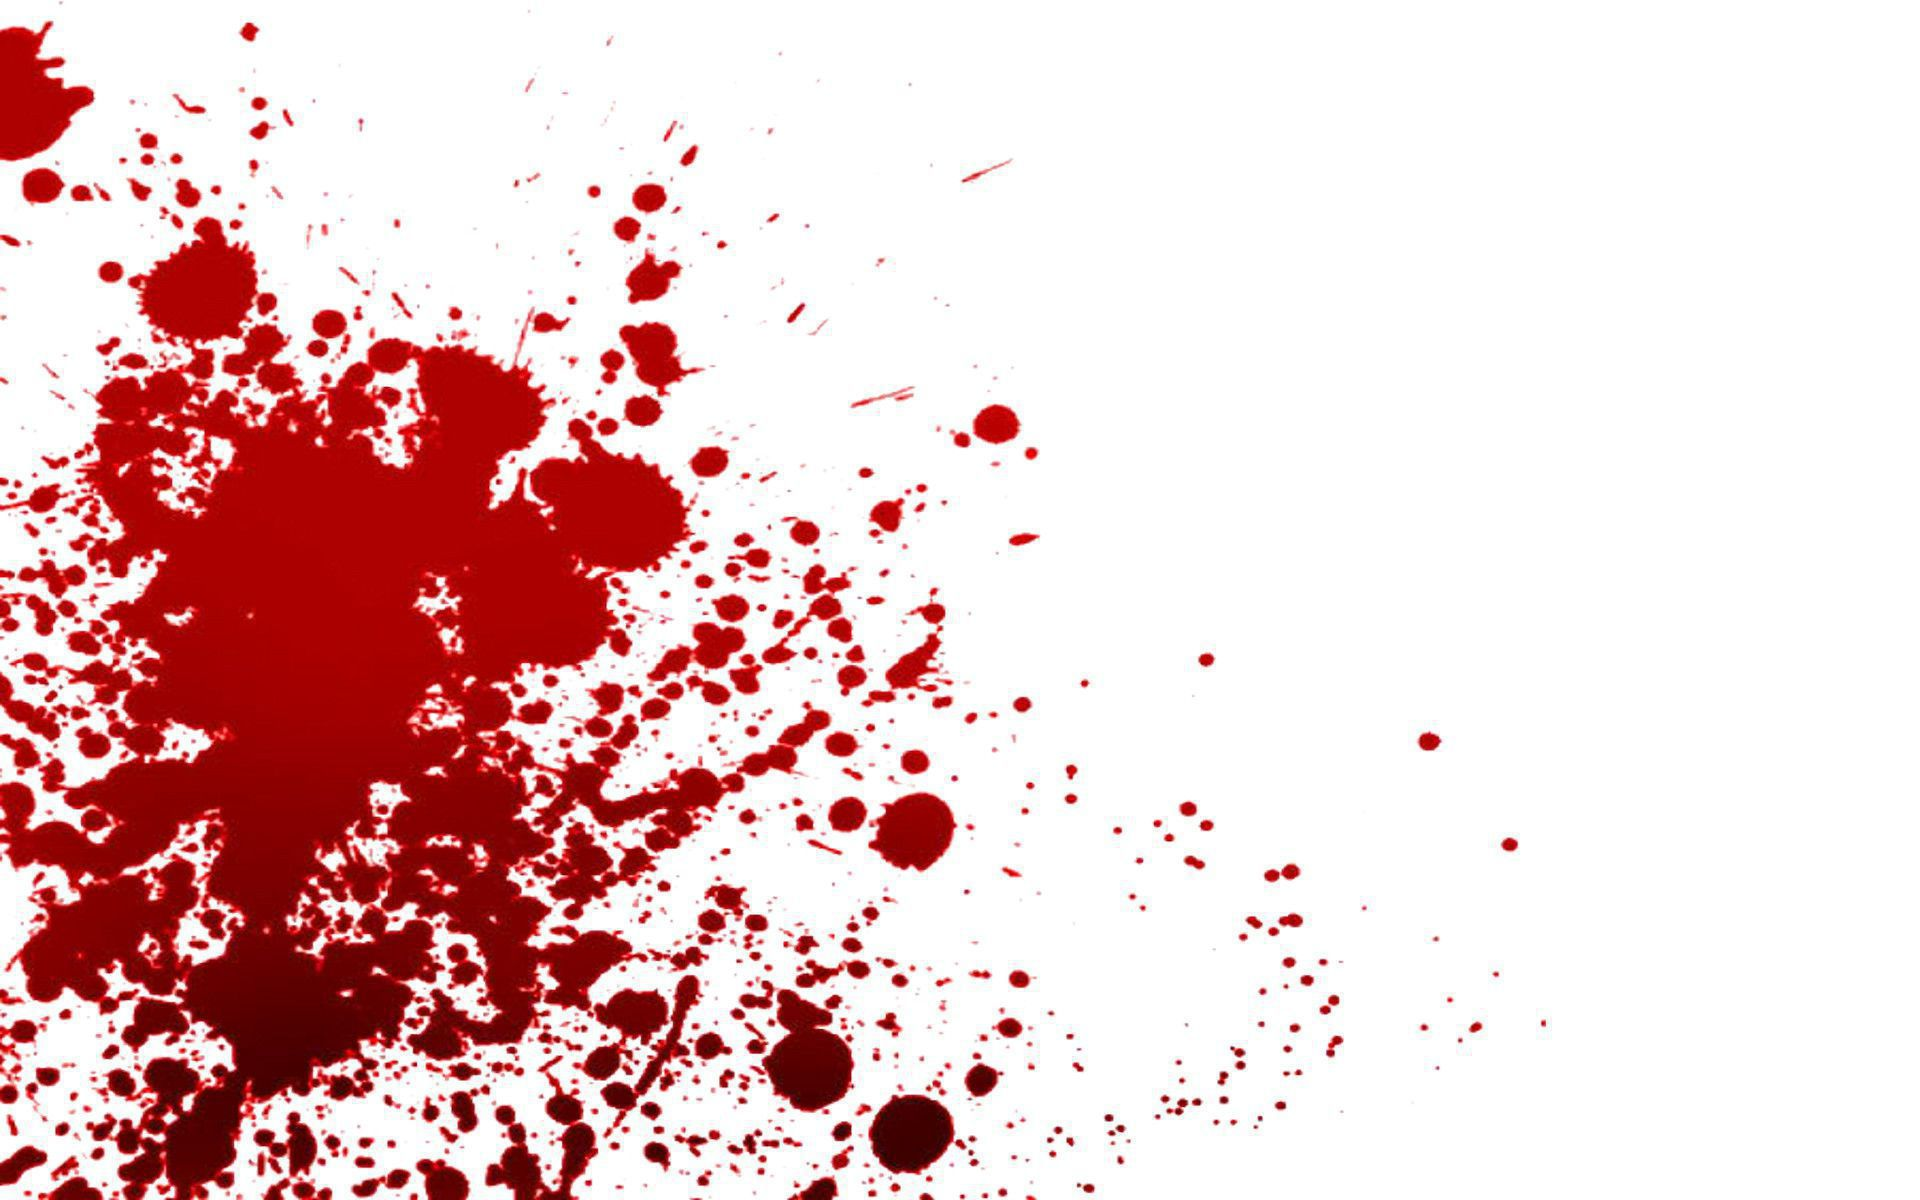 Blood Splatter Tumblr